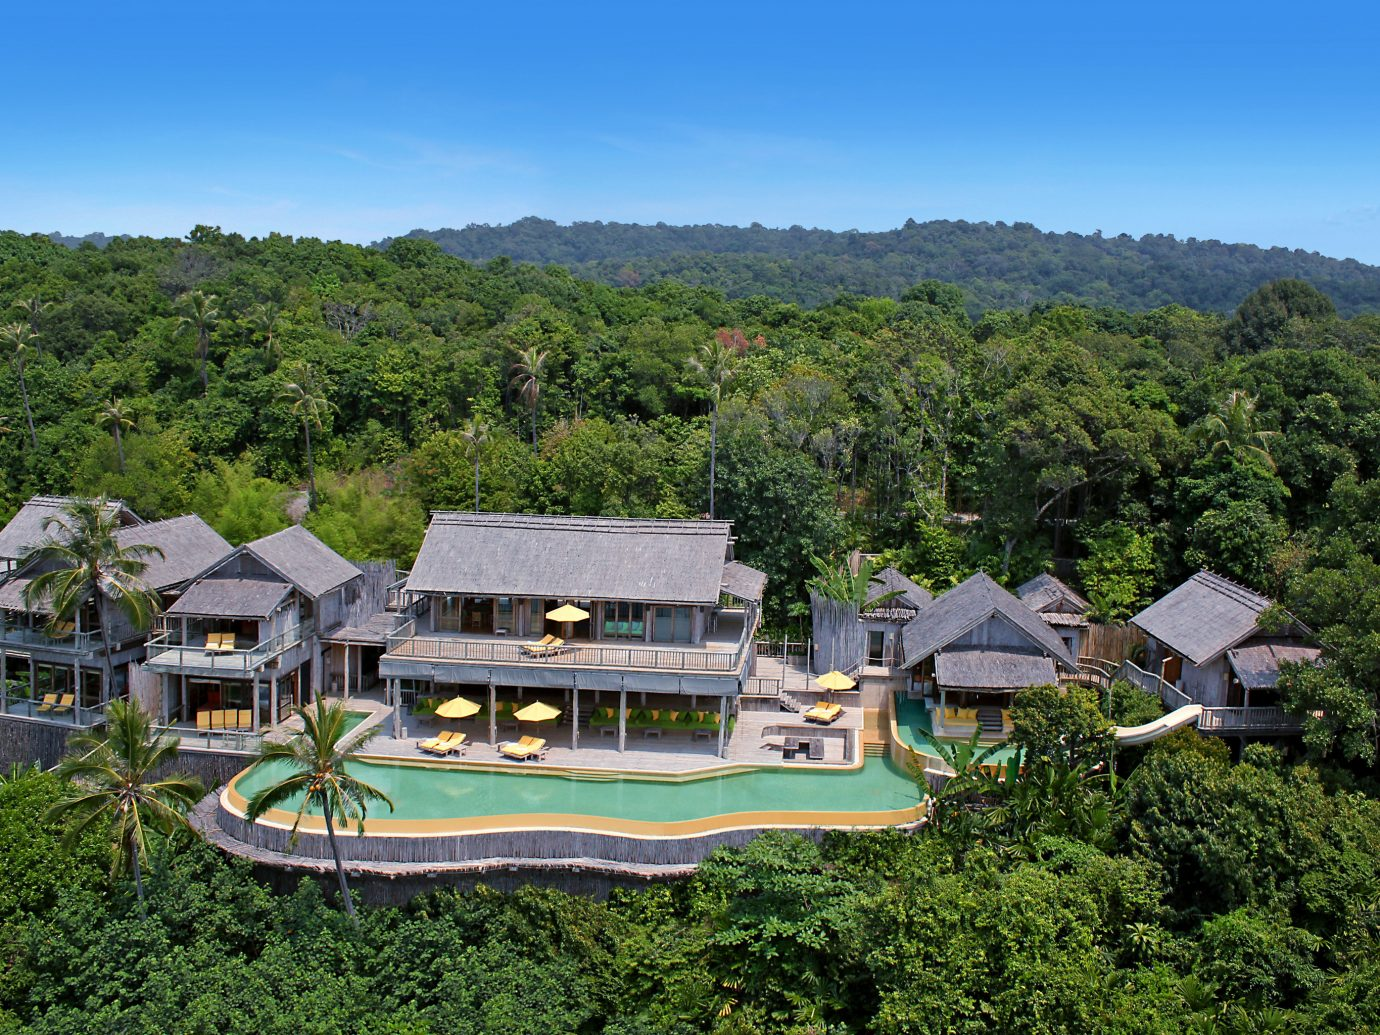 Health + Wellness Hotels Yoga Retreats tree outdoor property estate house Resort mountain mansion residential area Villa home Village cottage lush surrounded